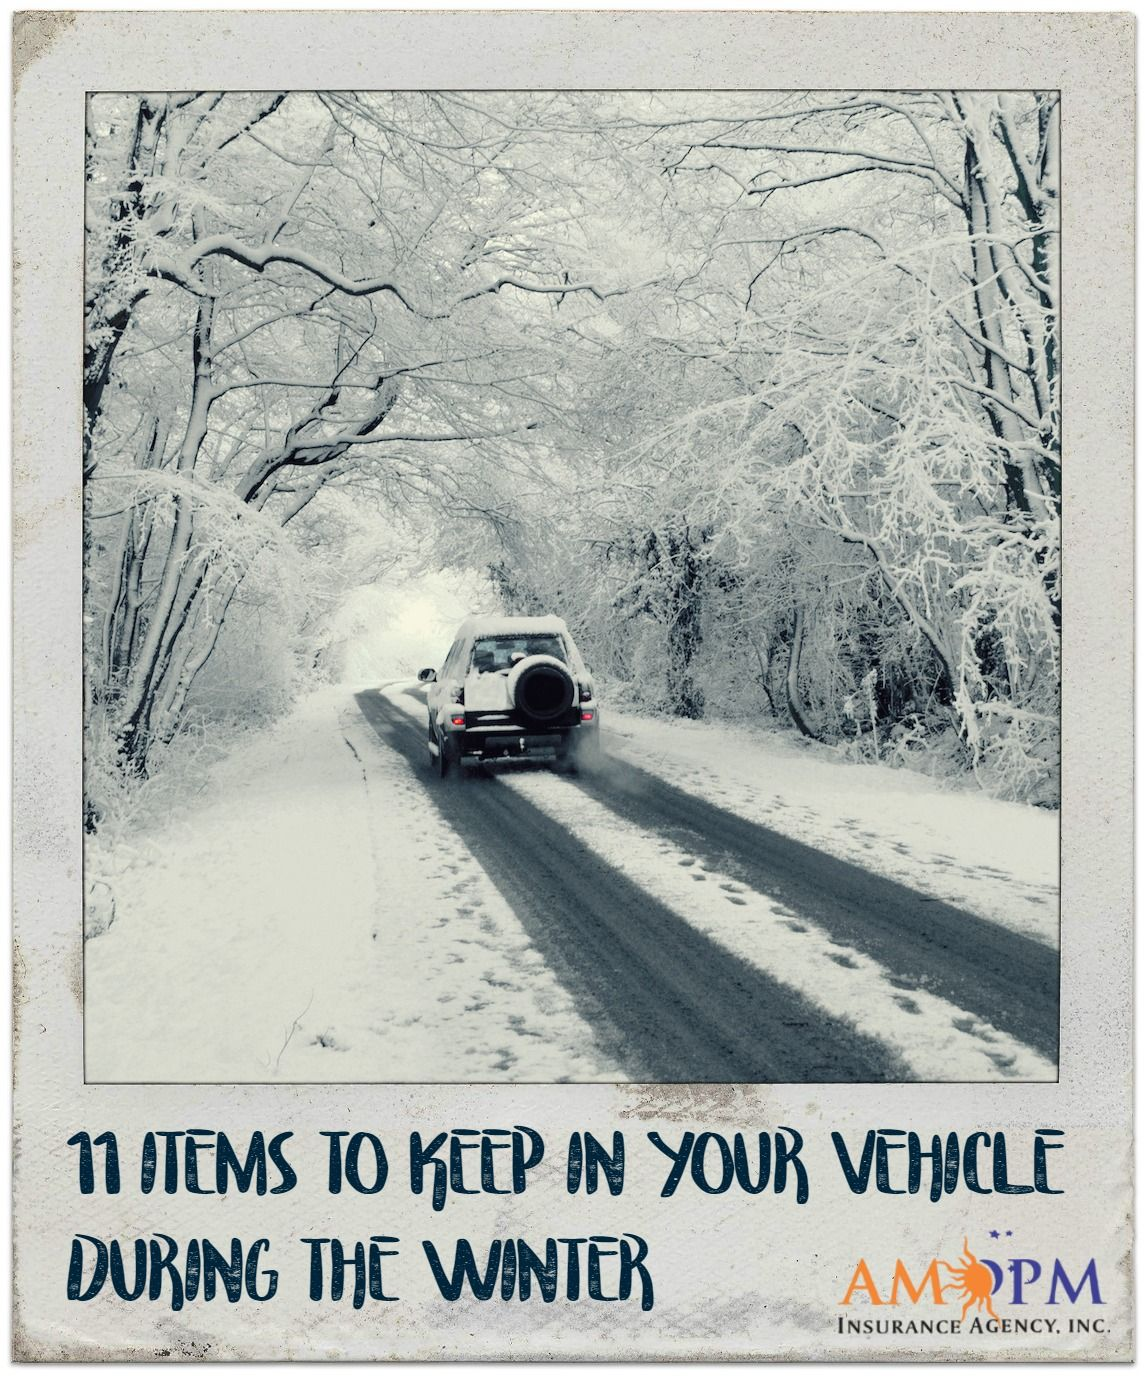 Check out our blog before your next road trip to the snowy